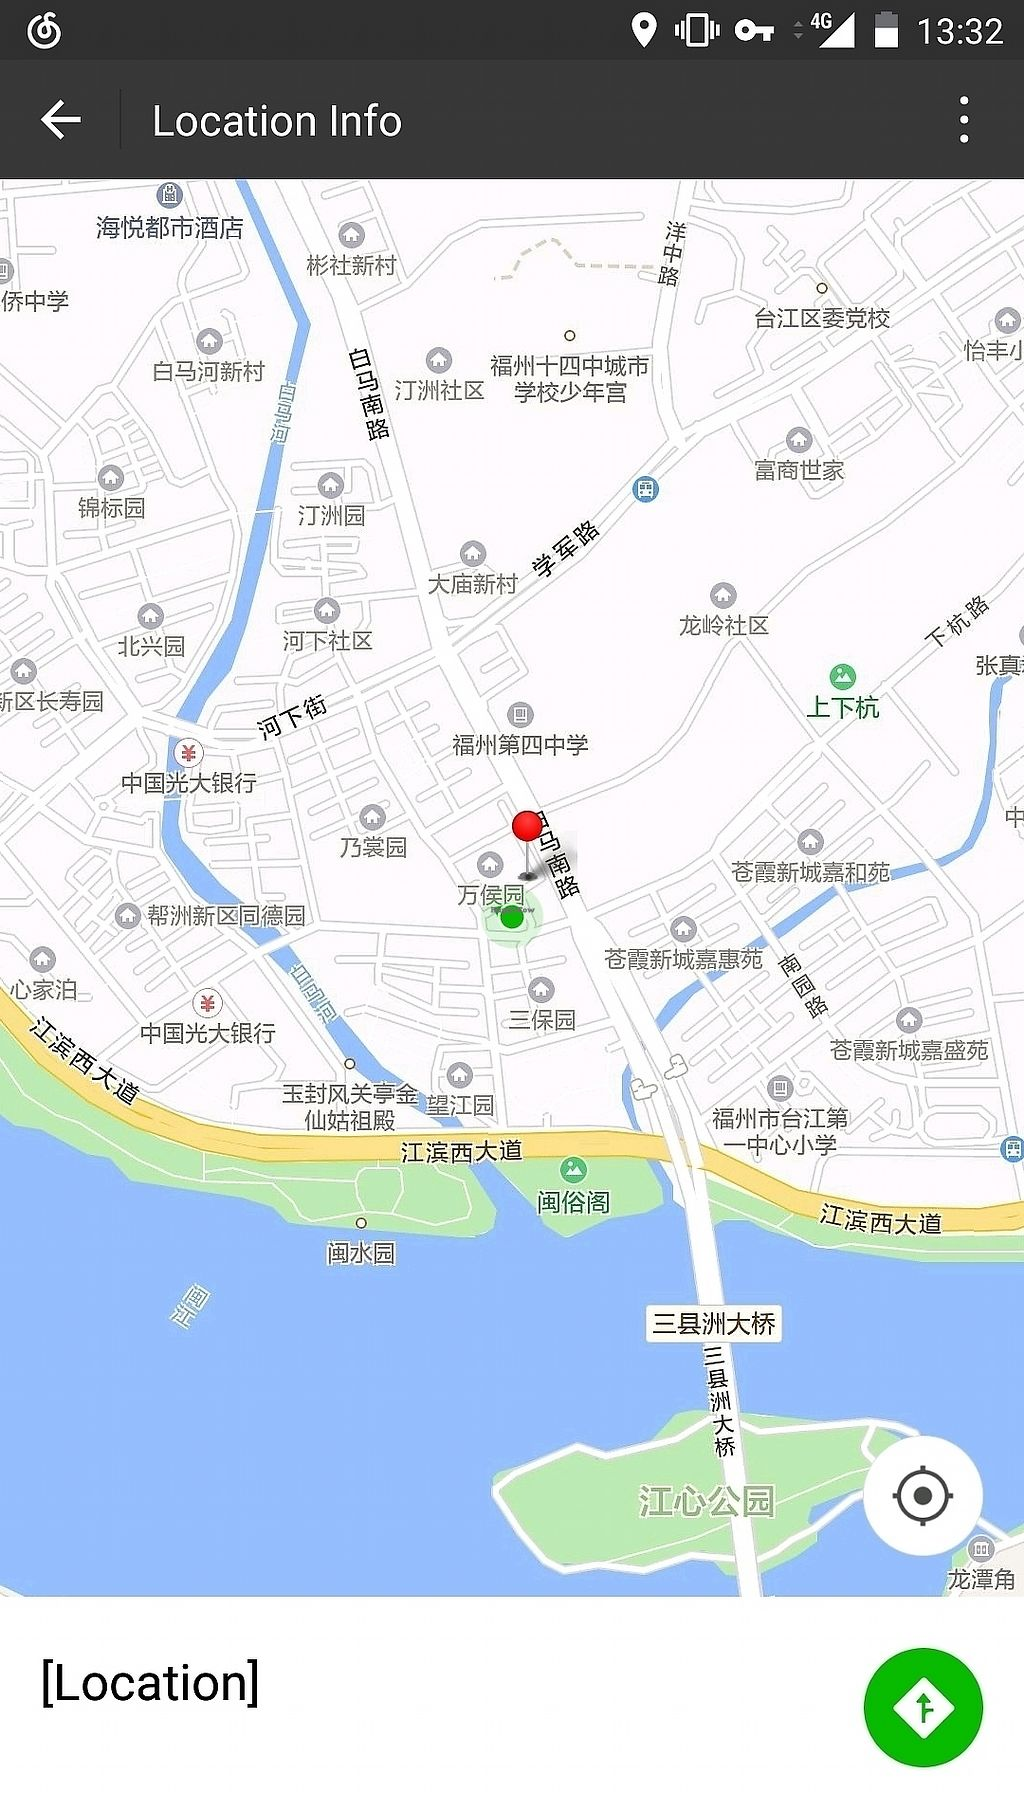 "Photo of Wu You You Su Dou Fang  by <a href=""/members/profile/ultm8"">ultm8</a> <br/>resturant location green dot <br/> April 15, 2018  - <a href='/contact/abuse/image/113082/386105'>Report</a>"